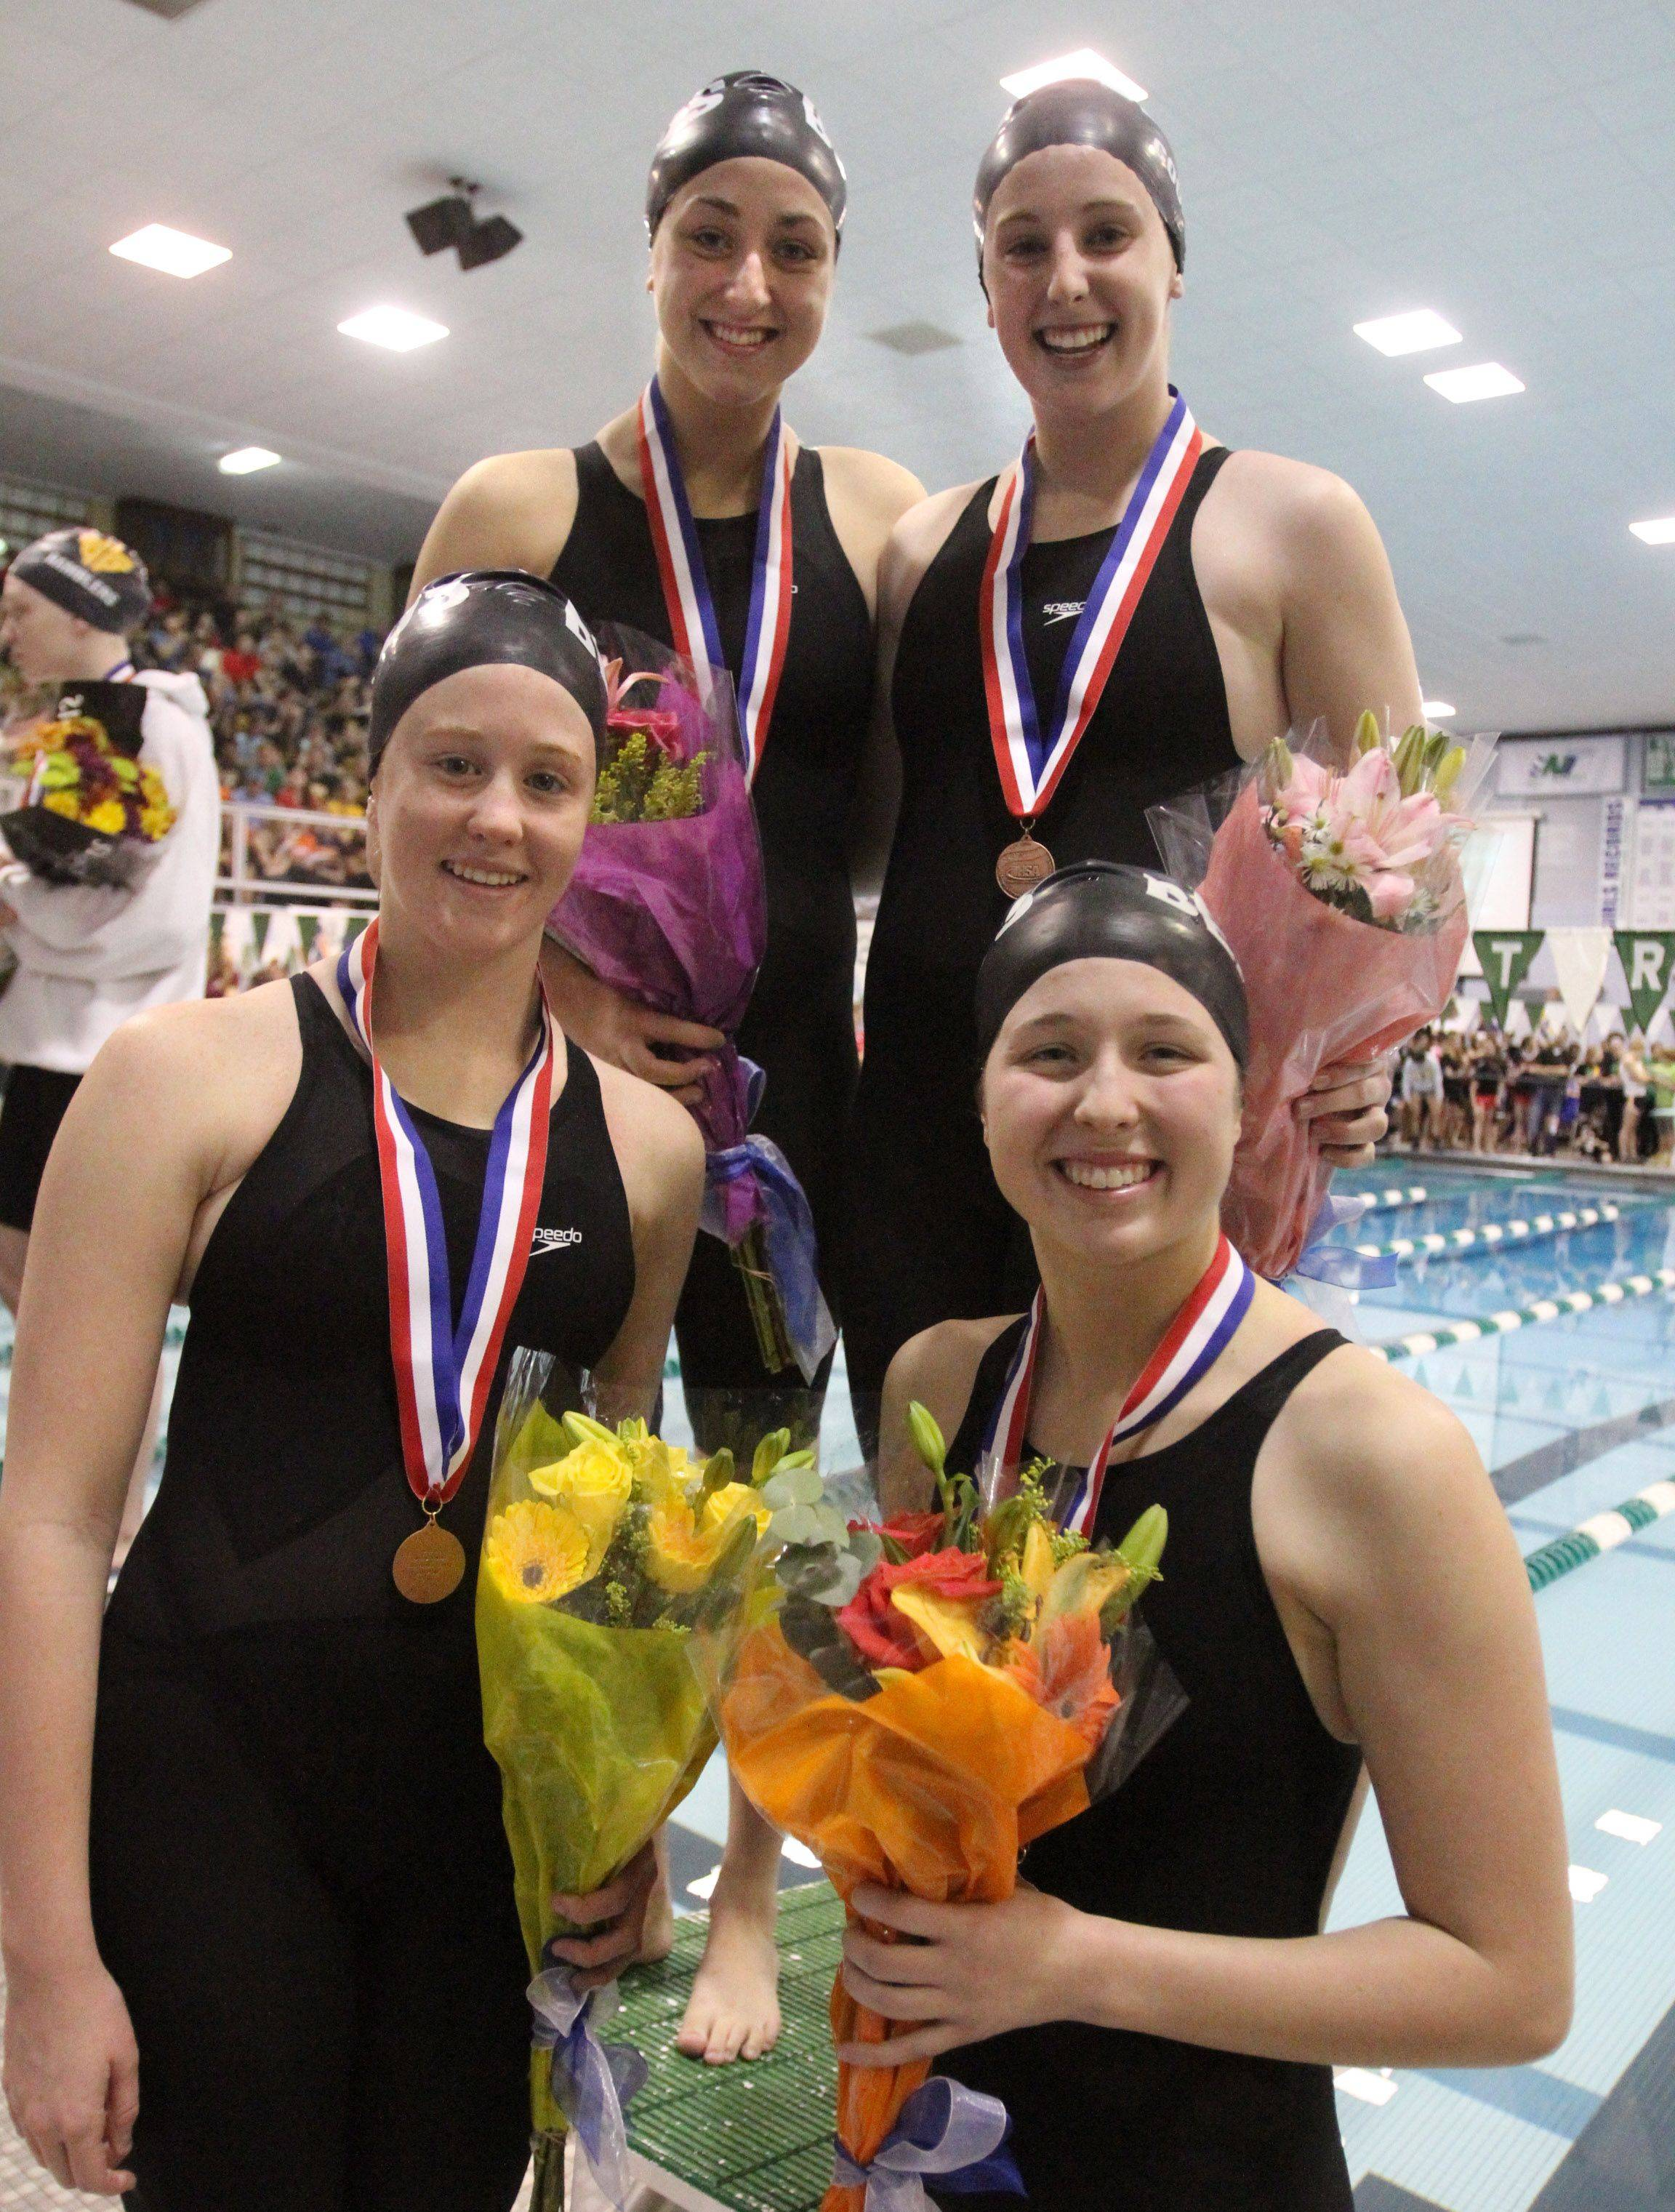 Rosary's Kate Canfield, Molly Coonce, Sarah Sykstus, and Katherin Hare placed fourth in the 200-yard medley relay at the IHSA state championships in Winnetka on Saturday, November 19th.